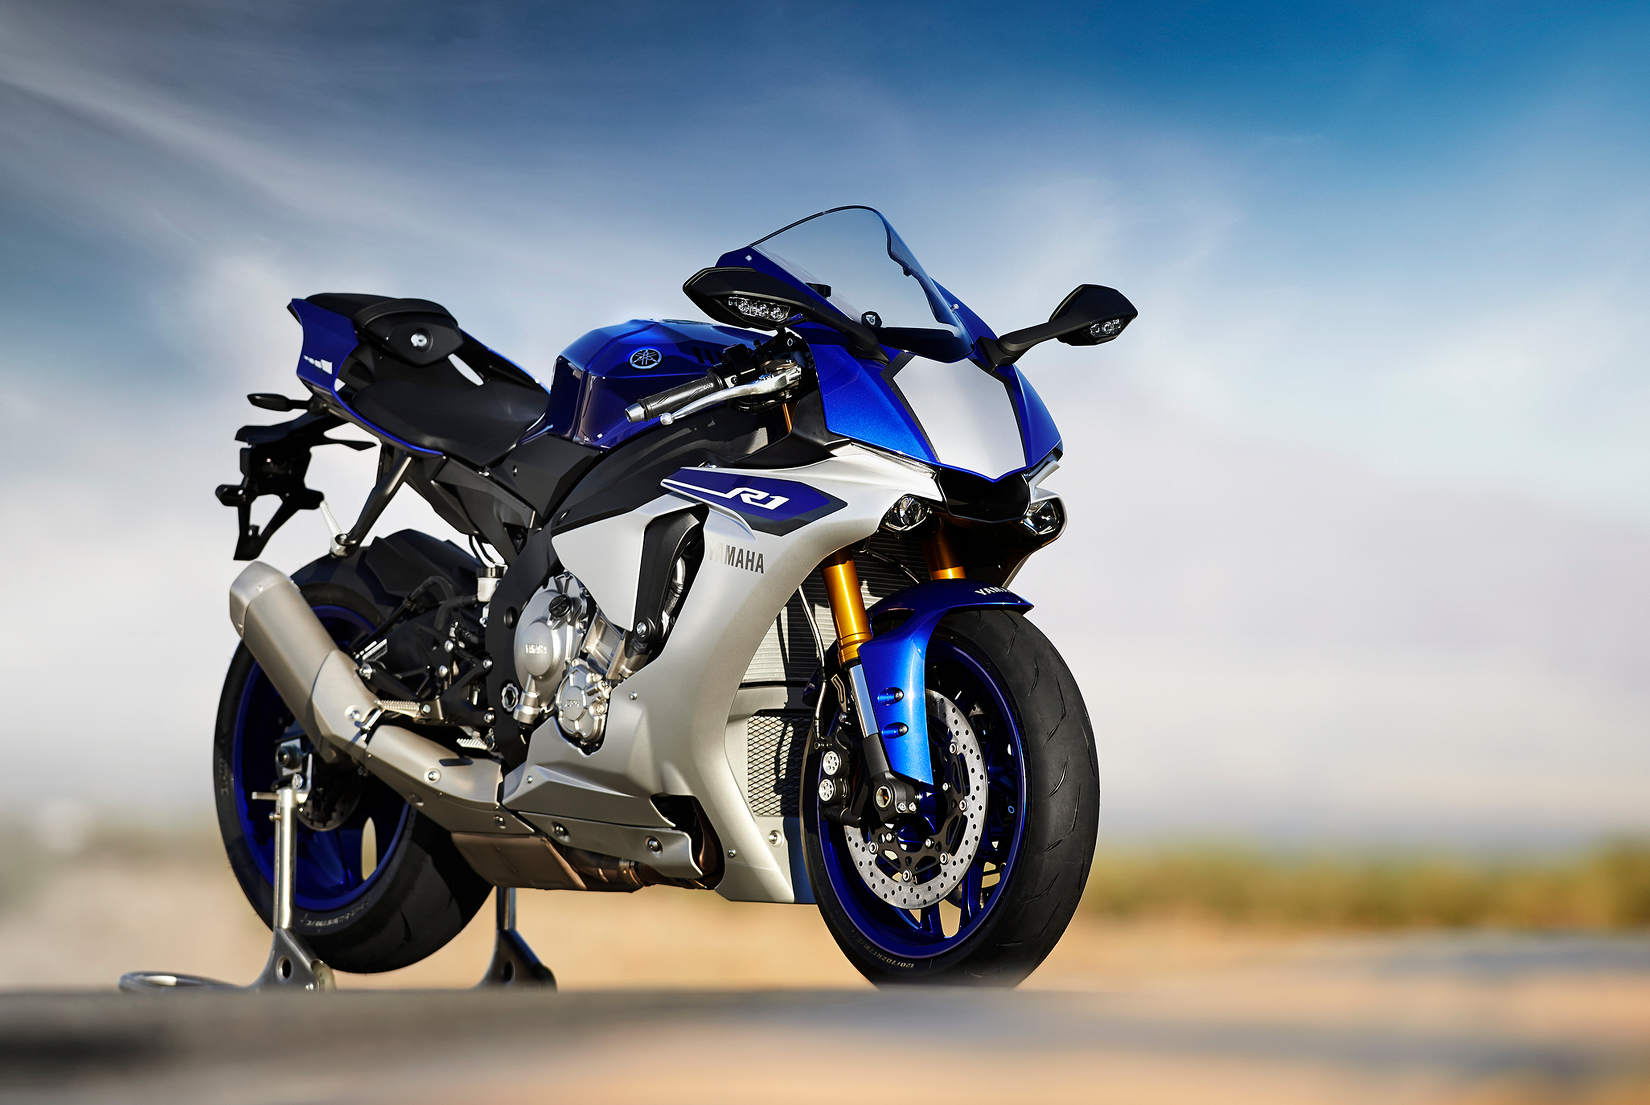 meet the 2015 yamaha yzf r1 and r1m serious as a heart attack. Black Bedroom Furniture Sets. Home Design Ideas